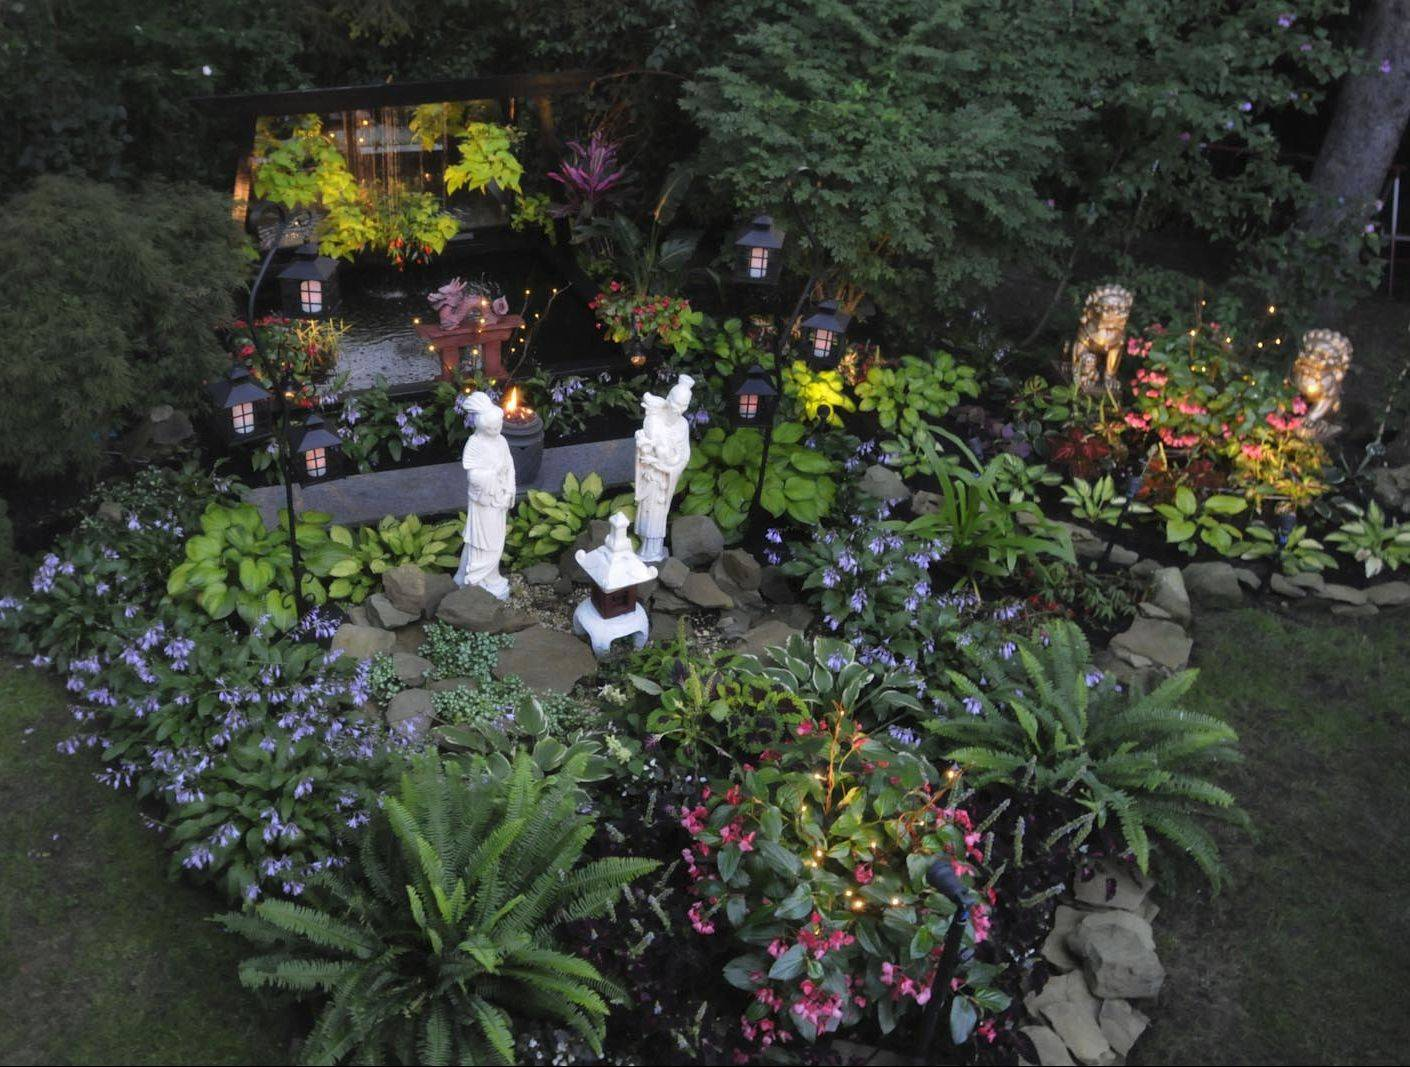 Lighting transforms the backyard of McHugh's garden into a magical place at night.